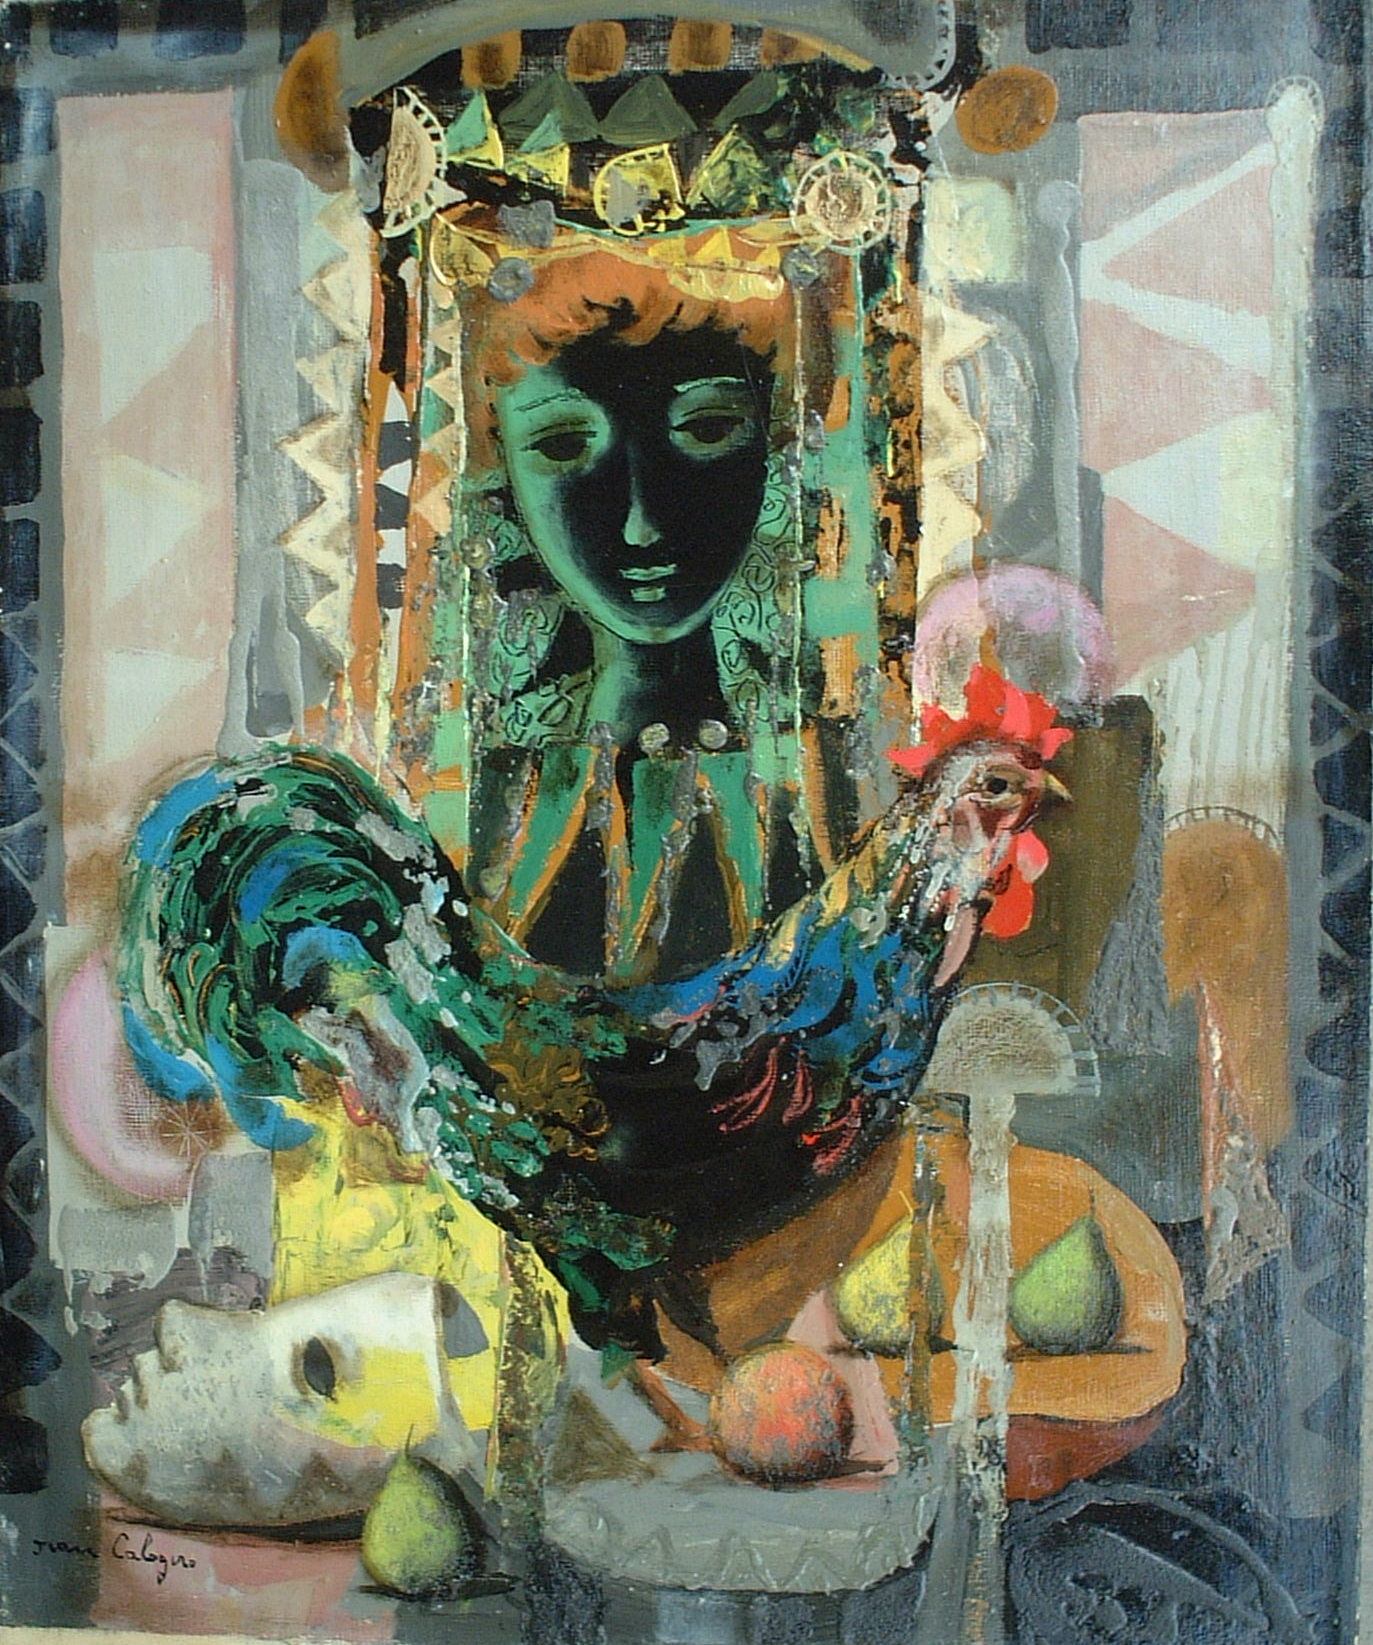 Artist: J. Calogero Title: Rooster and Mask Size: 21.5in x 18in Framed: No